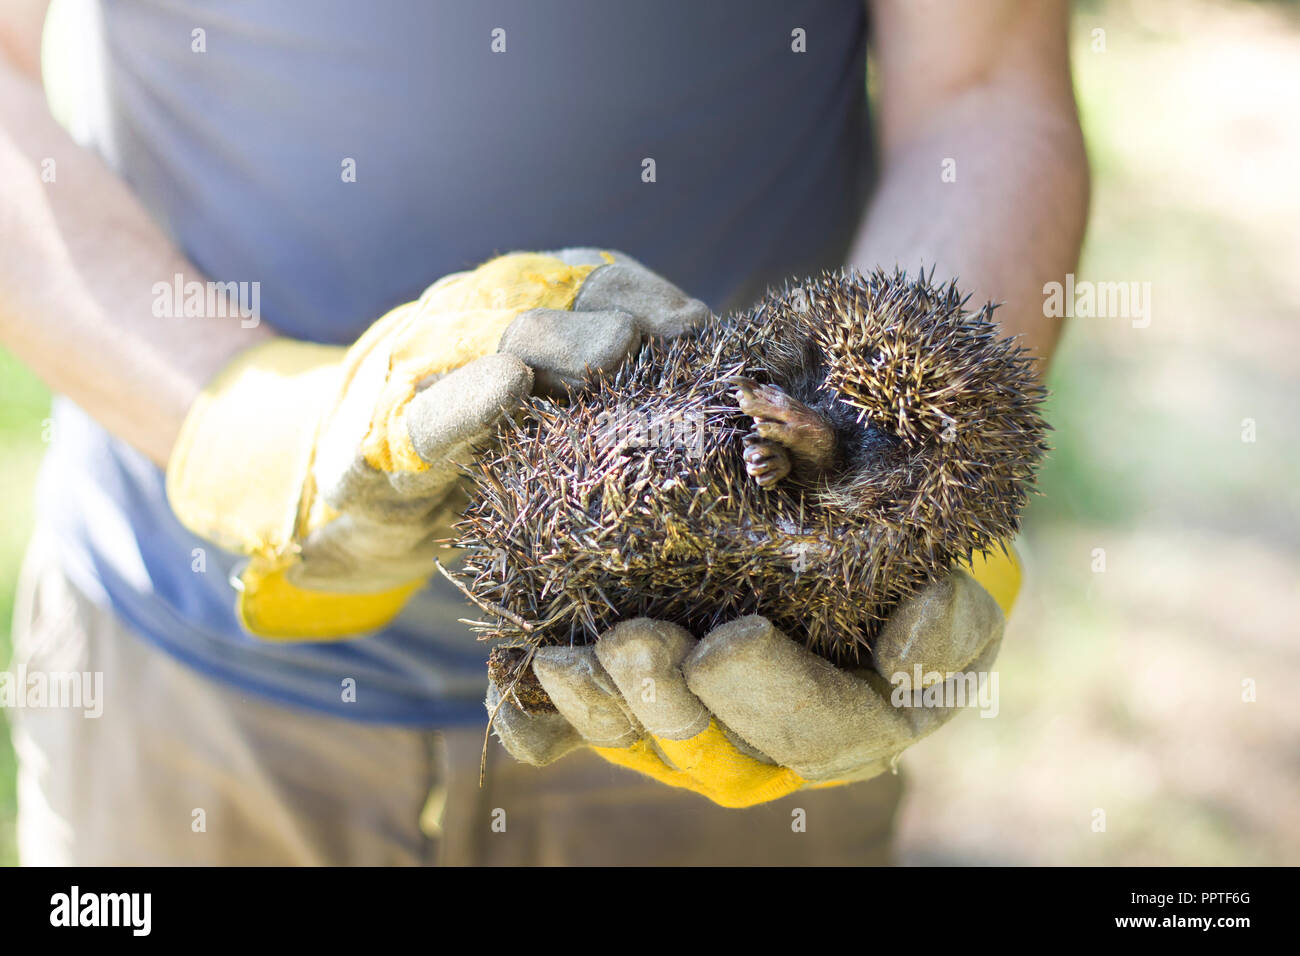 A hunched hedgehog kept in the hands in protective gloves. - Stock Image